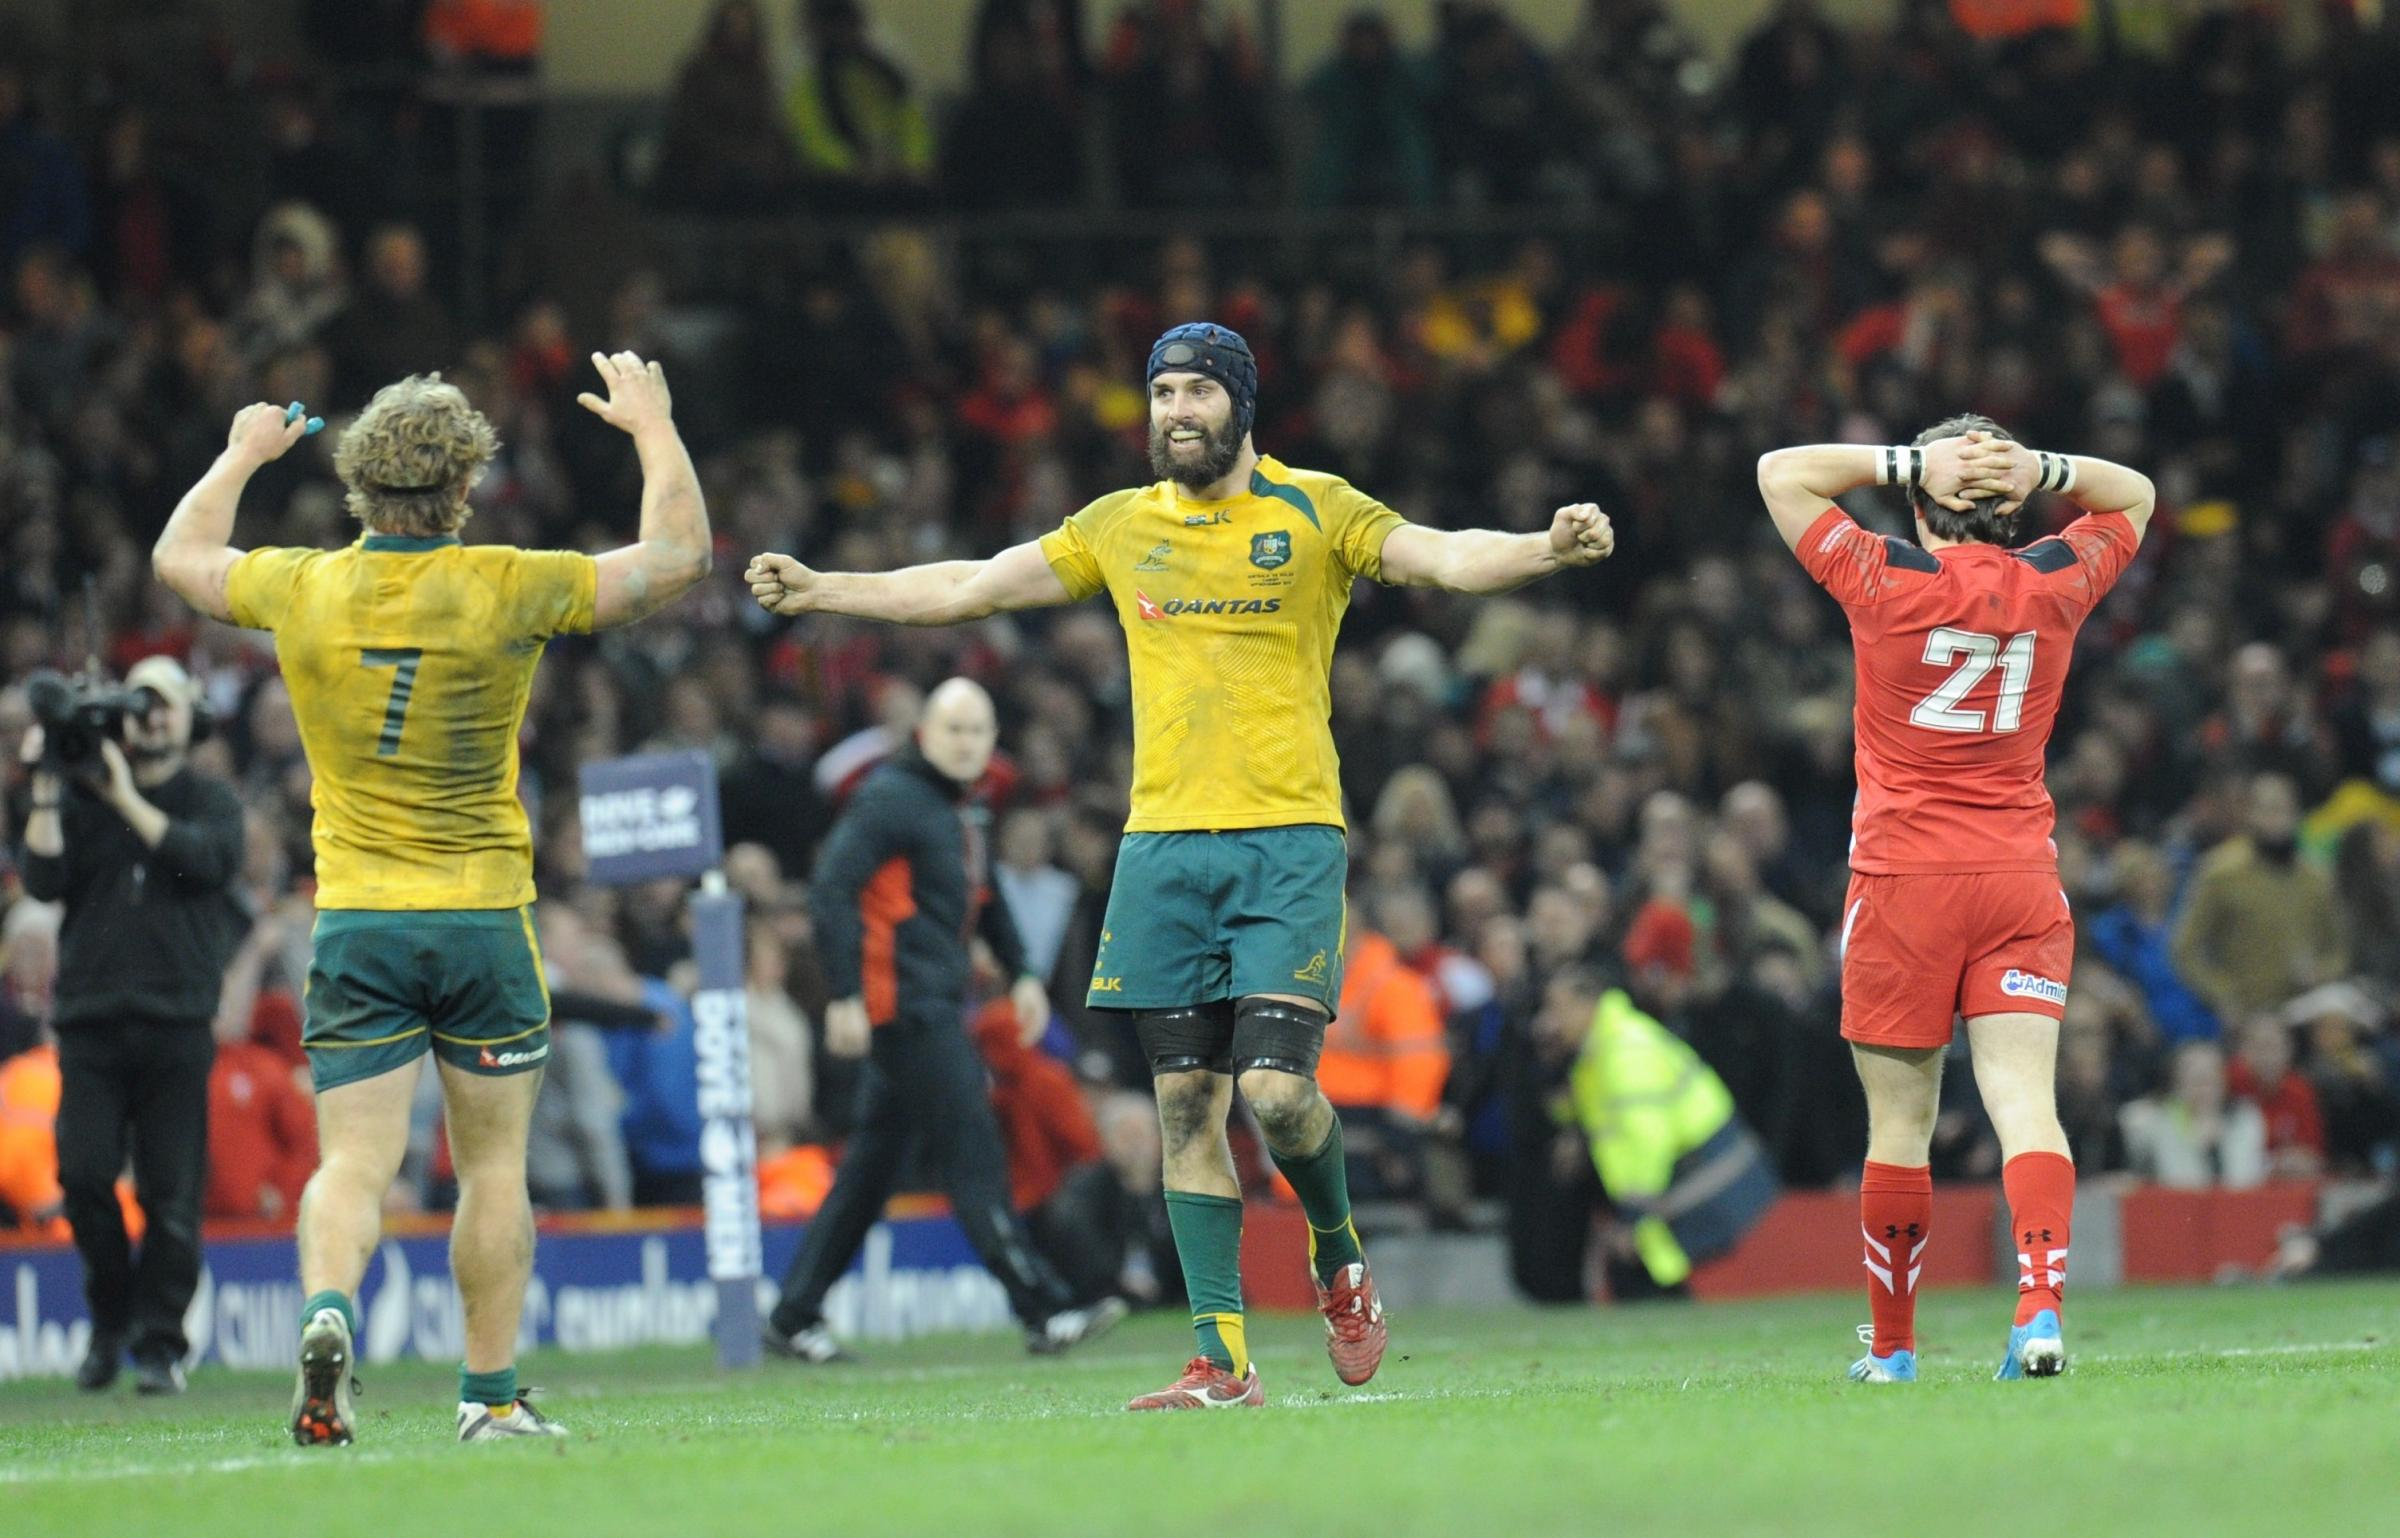 Another narrow loss but Wales are outclassed by Wallabies